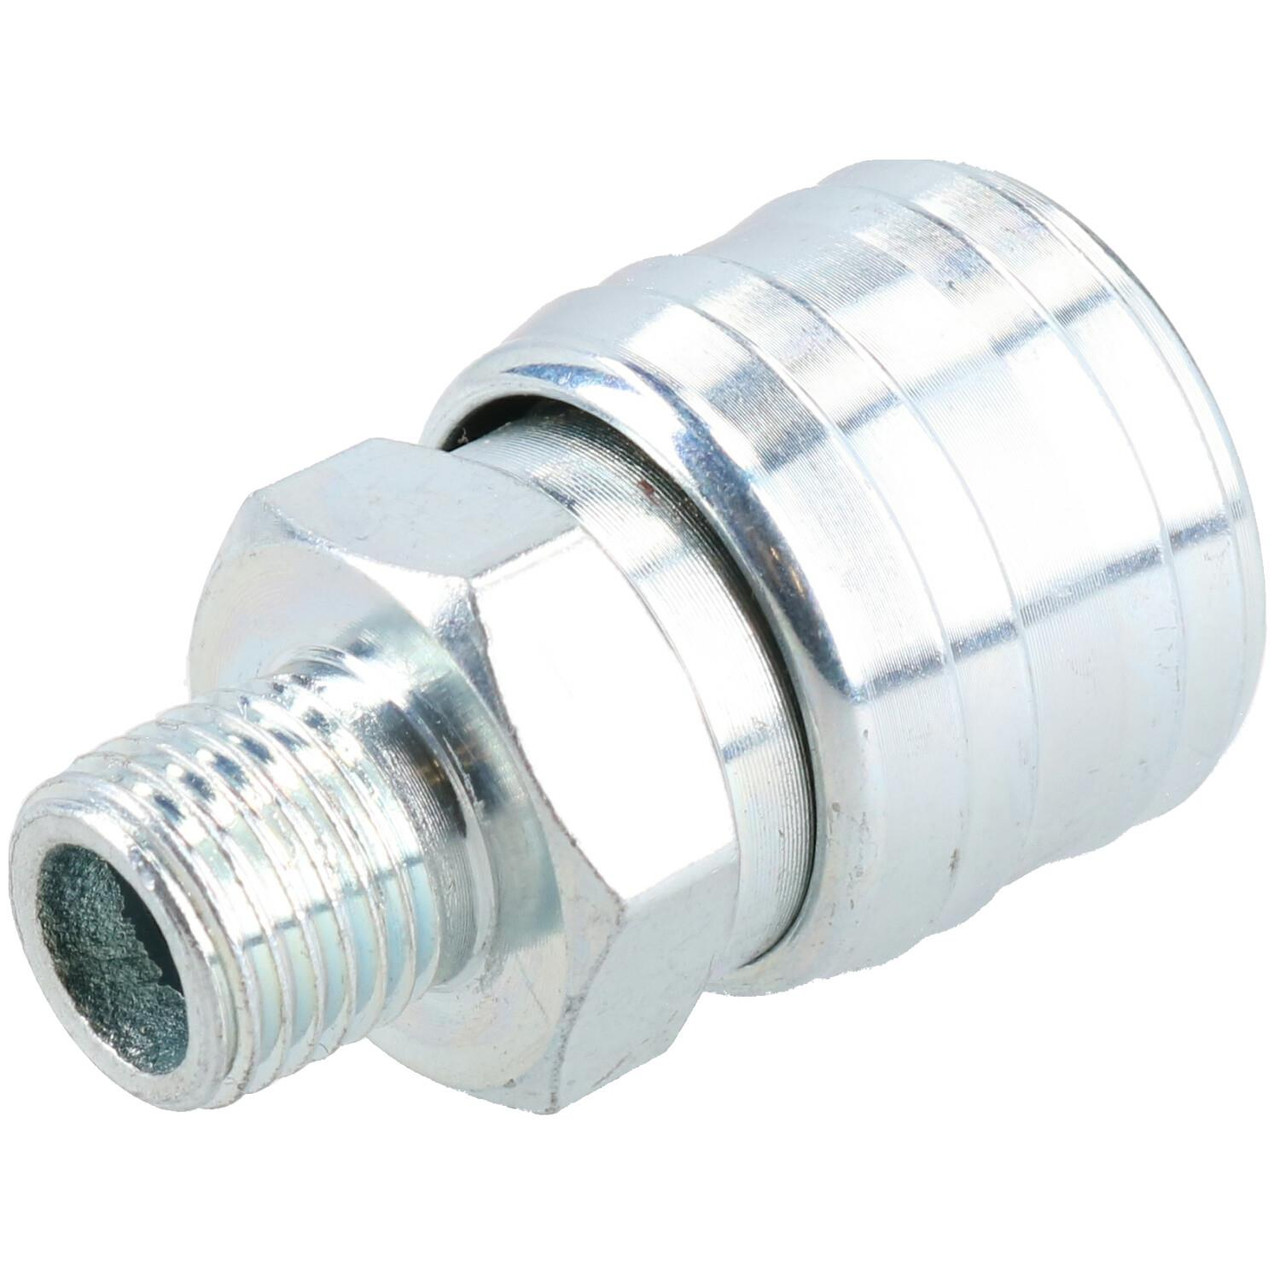 Air Line Hose Connector Fitting Female Quick Release 1//4 inch BSP Female 2pk